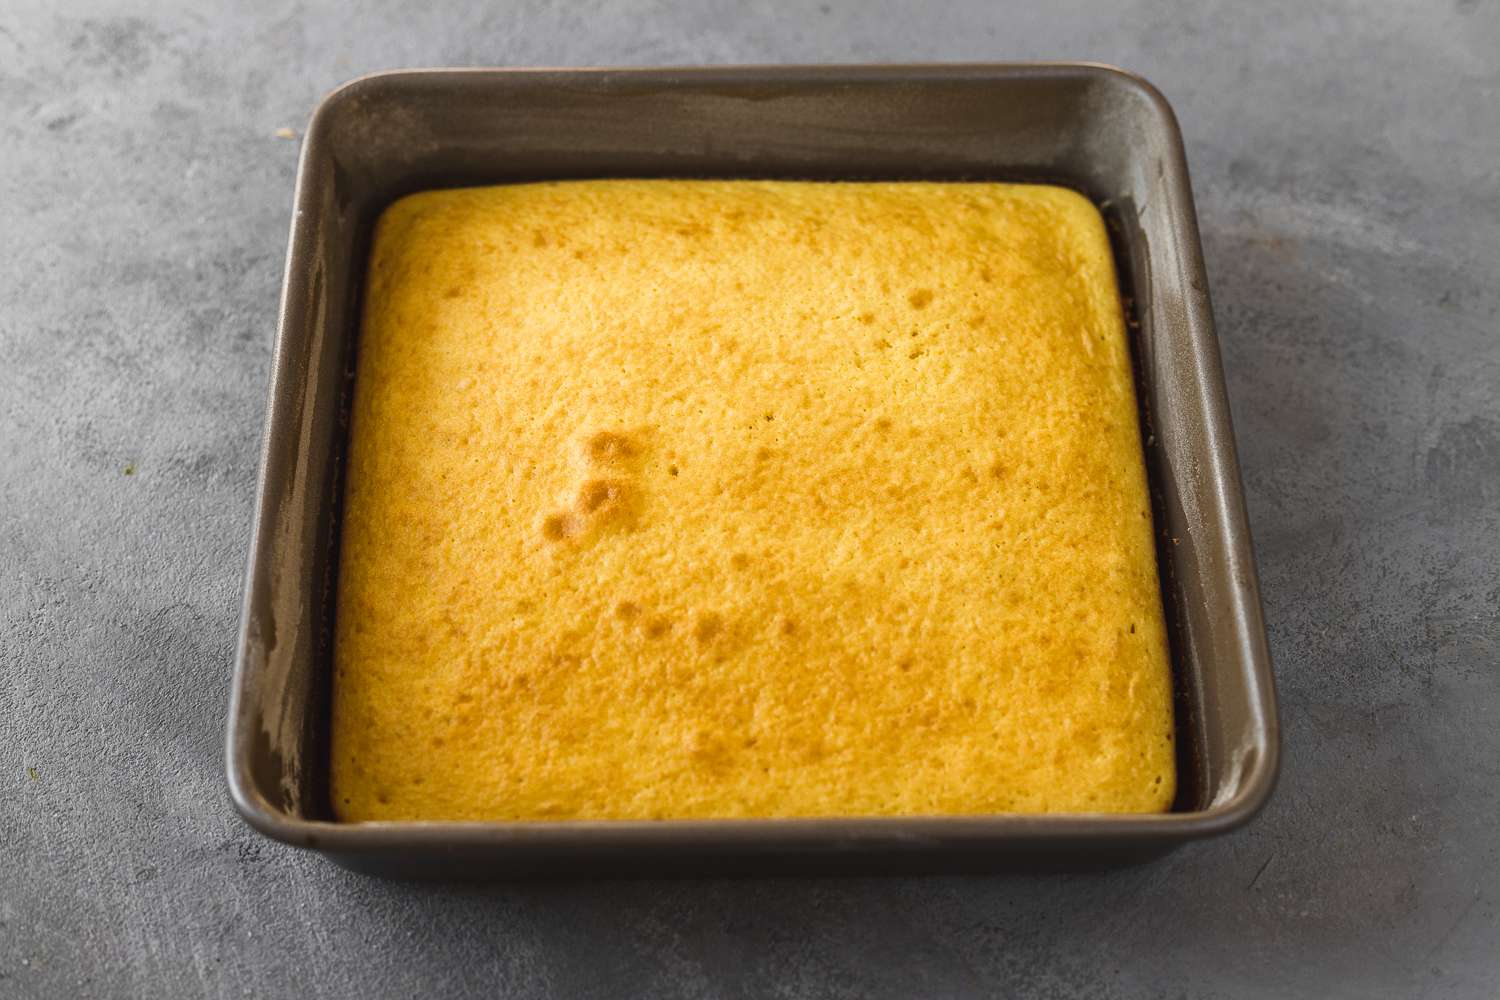 Small Cake From Half of a Box of Cake Mix in a baking pan